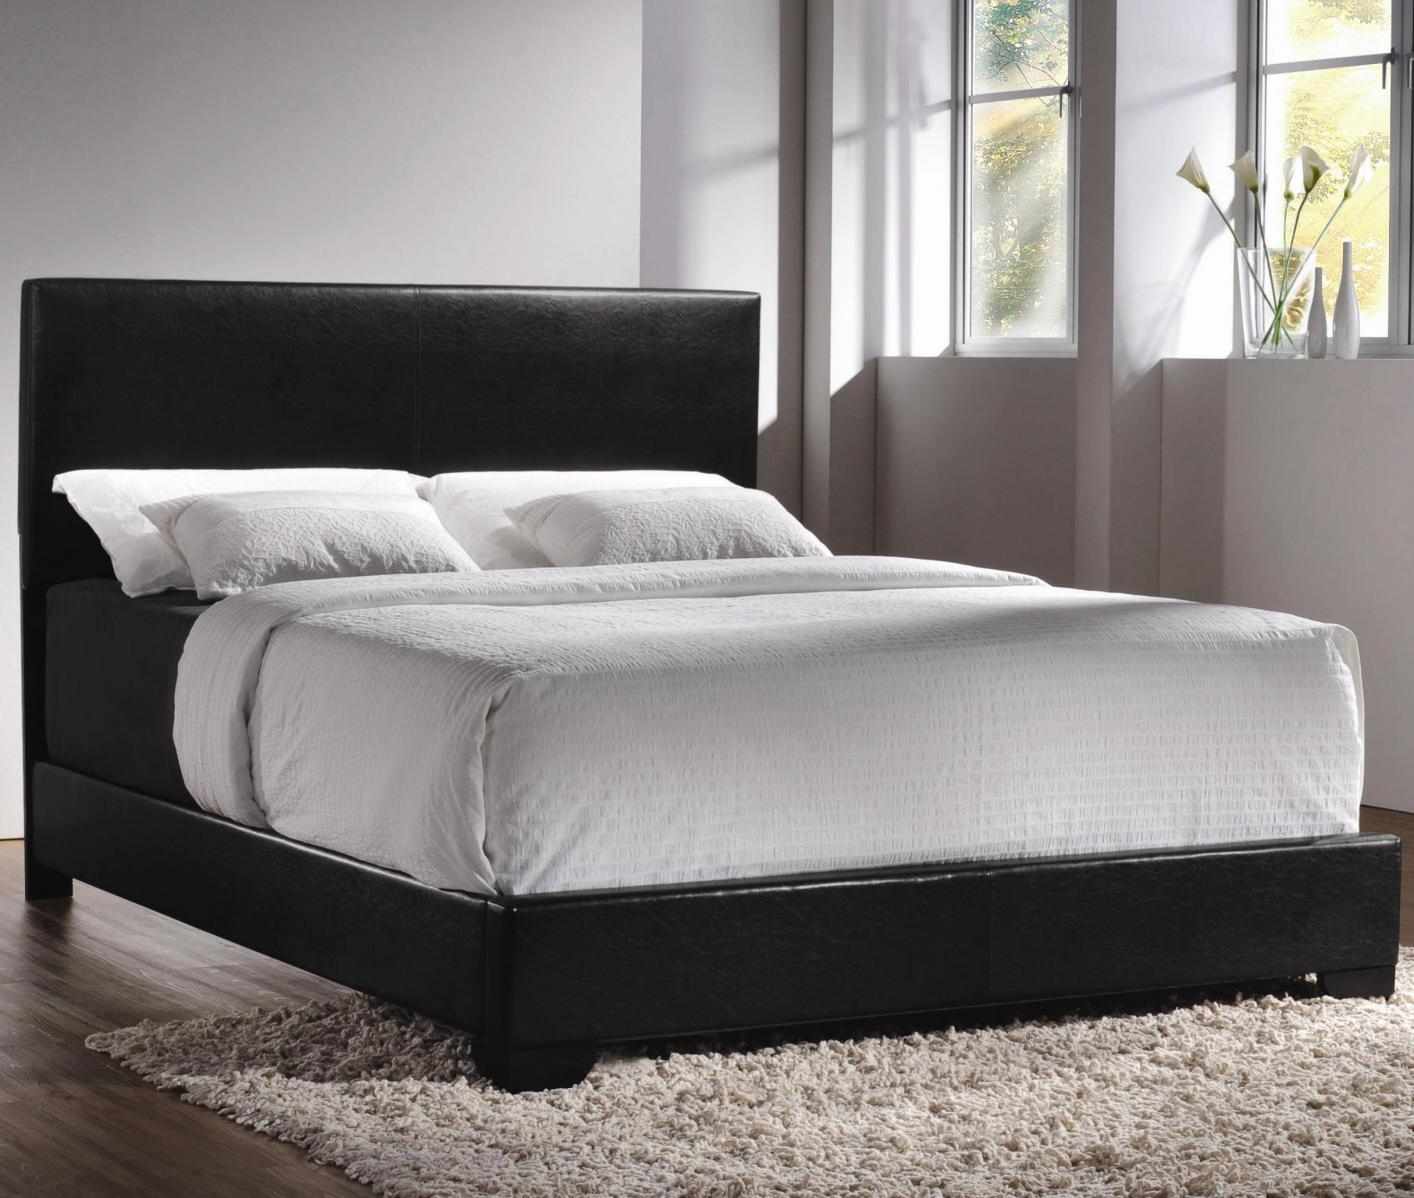 Leather Bed Frame Black Leather Bed